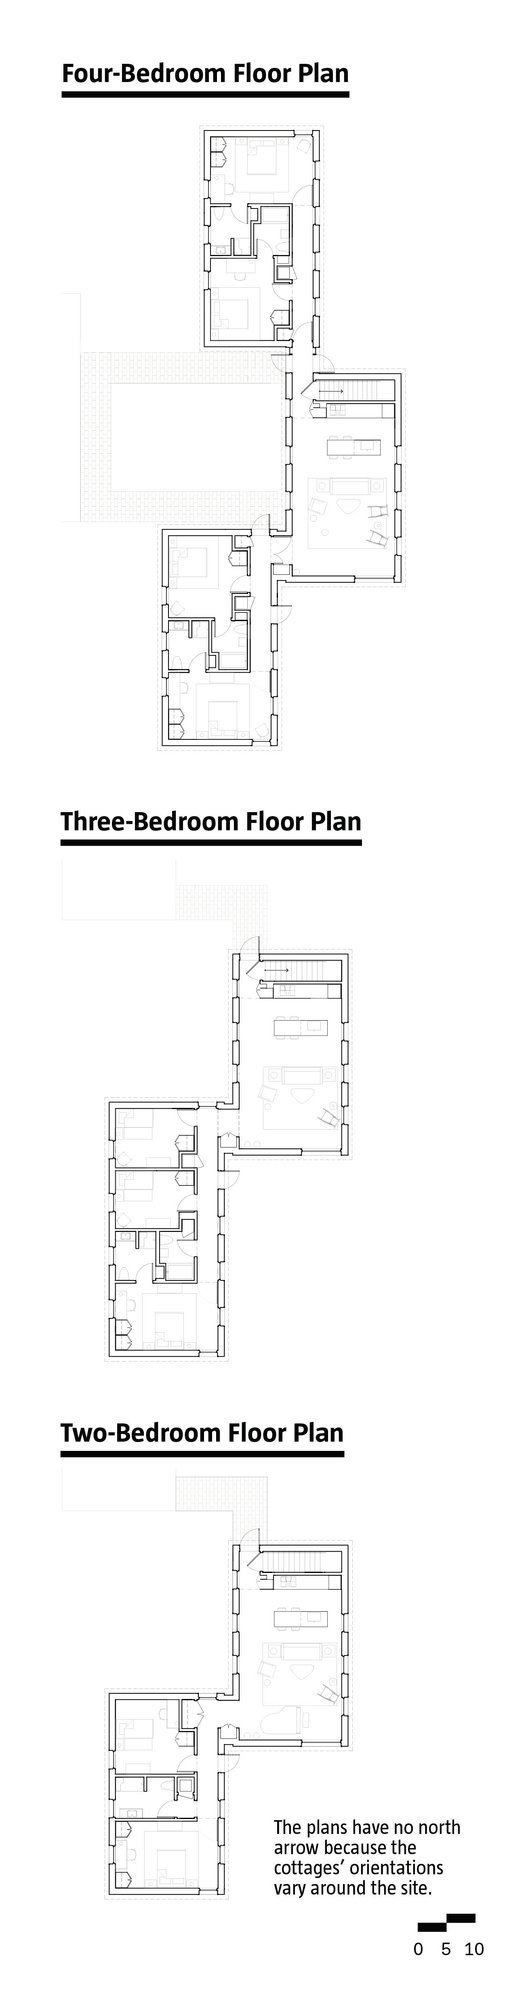 76 best small house plans images on pinterest small house find this pin and more on small house plans by pdxseth